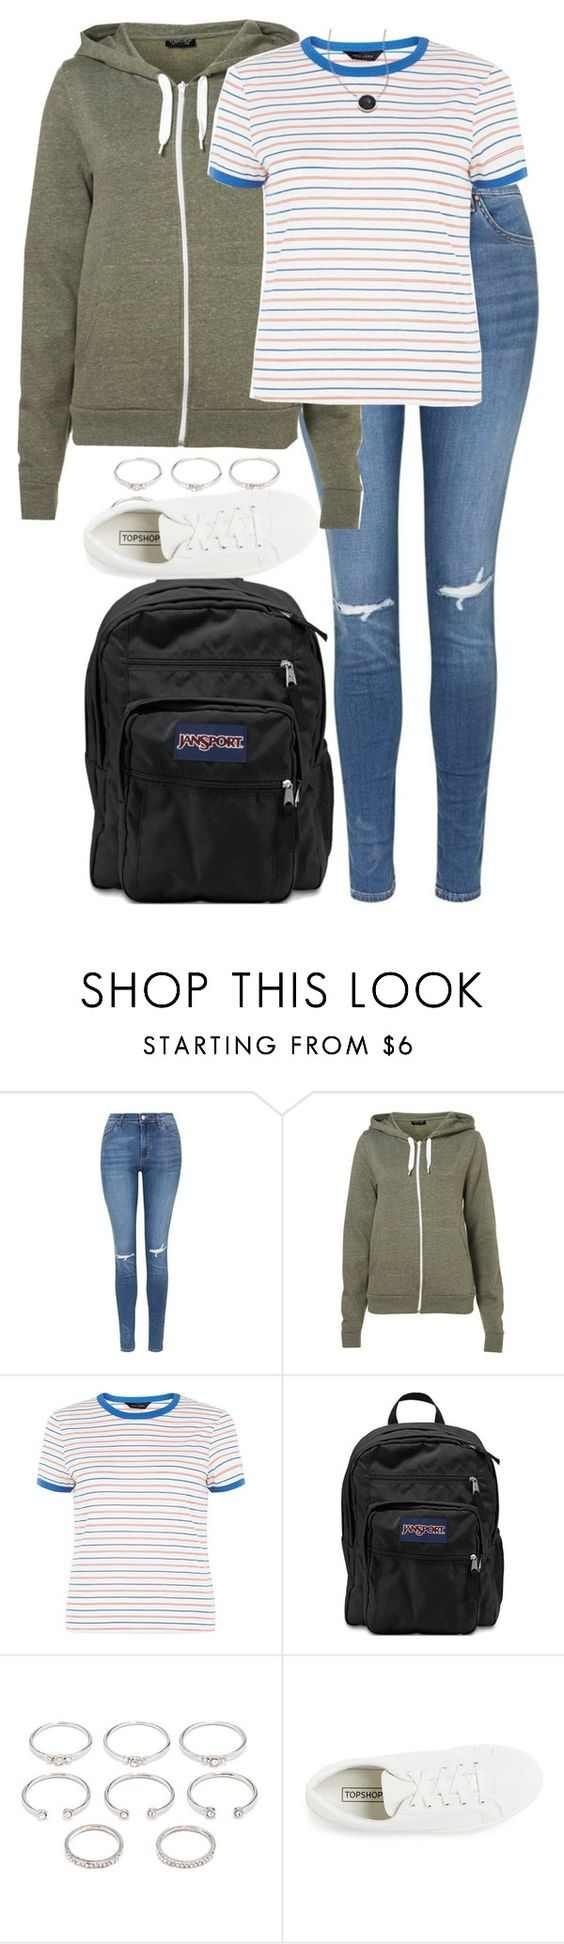 """OOTD - school. // 21.05.16"" by francesca-valentina-gagliardi ❤ liked on Polyvore featuring Topshop, JanSport, Forever 21 and Pineapple Seed"